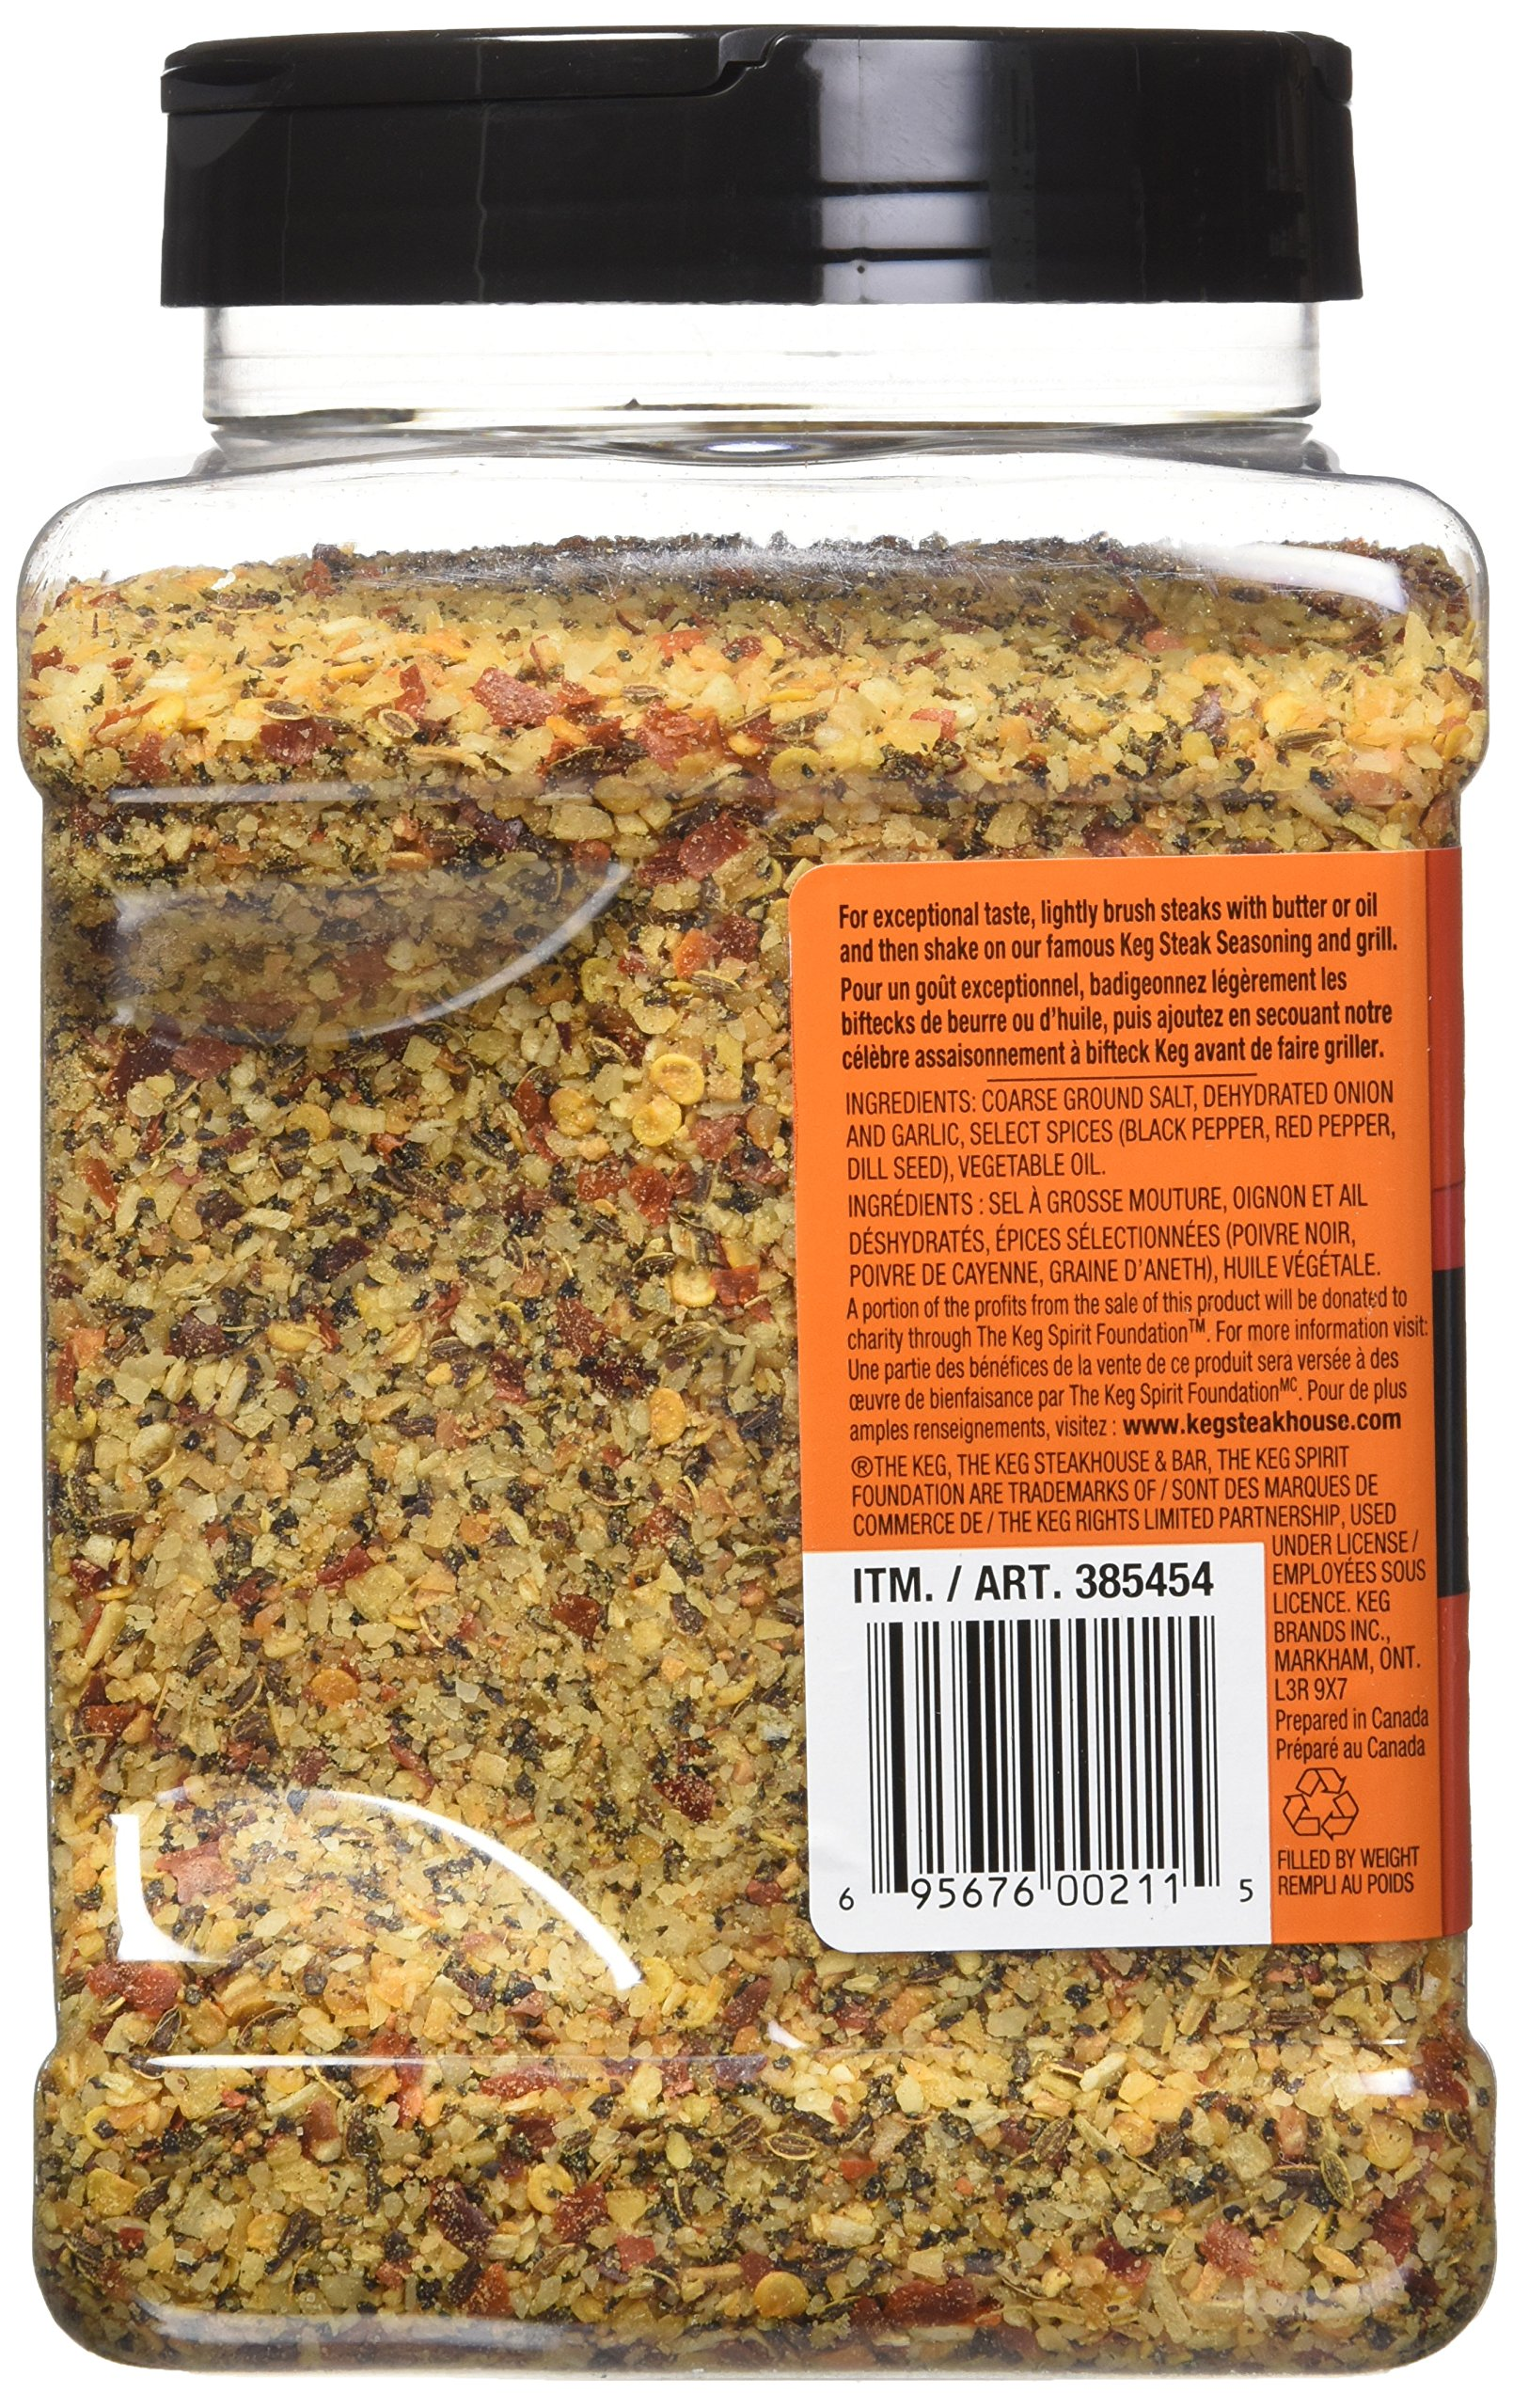 The Keg Steakhouse Steak Seasoning Gluten Free No MSG Added - 1.1kg | 38.8oz {Imported from Canada} by The Keg (Image #4)